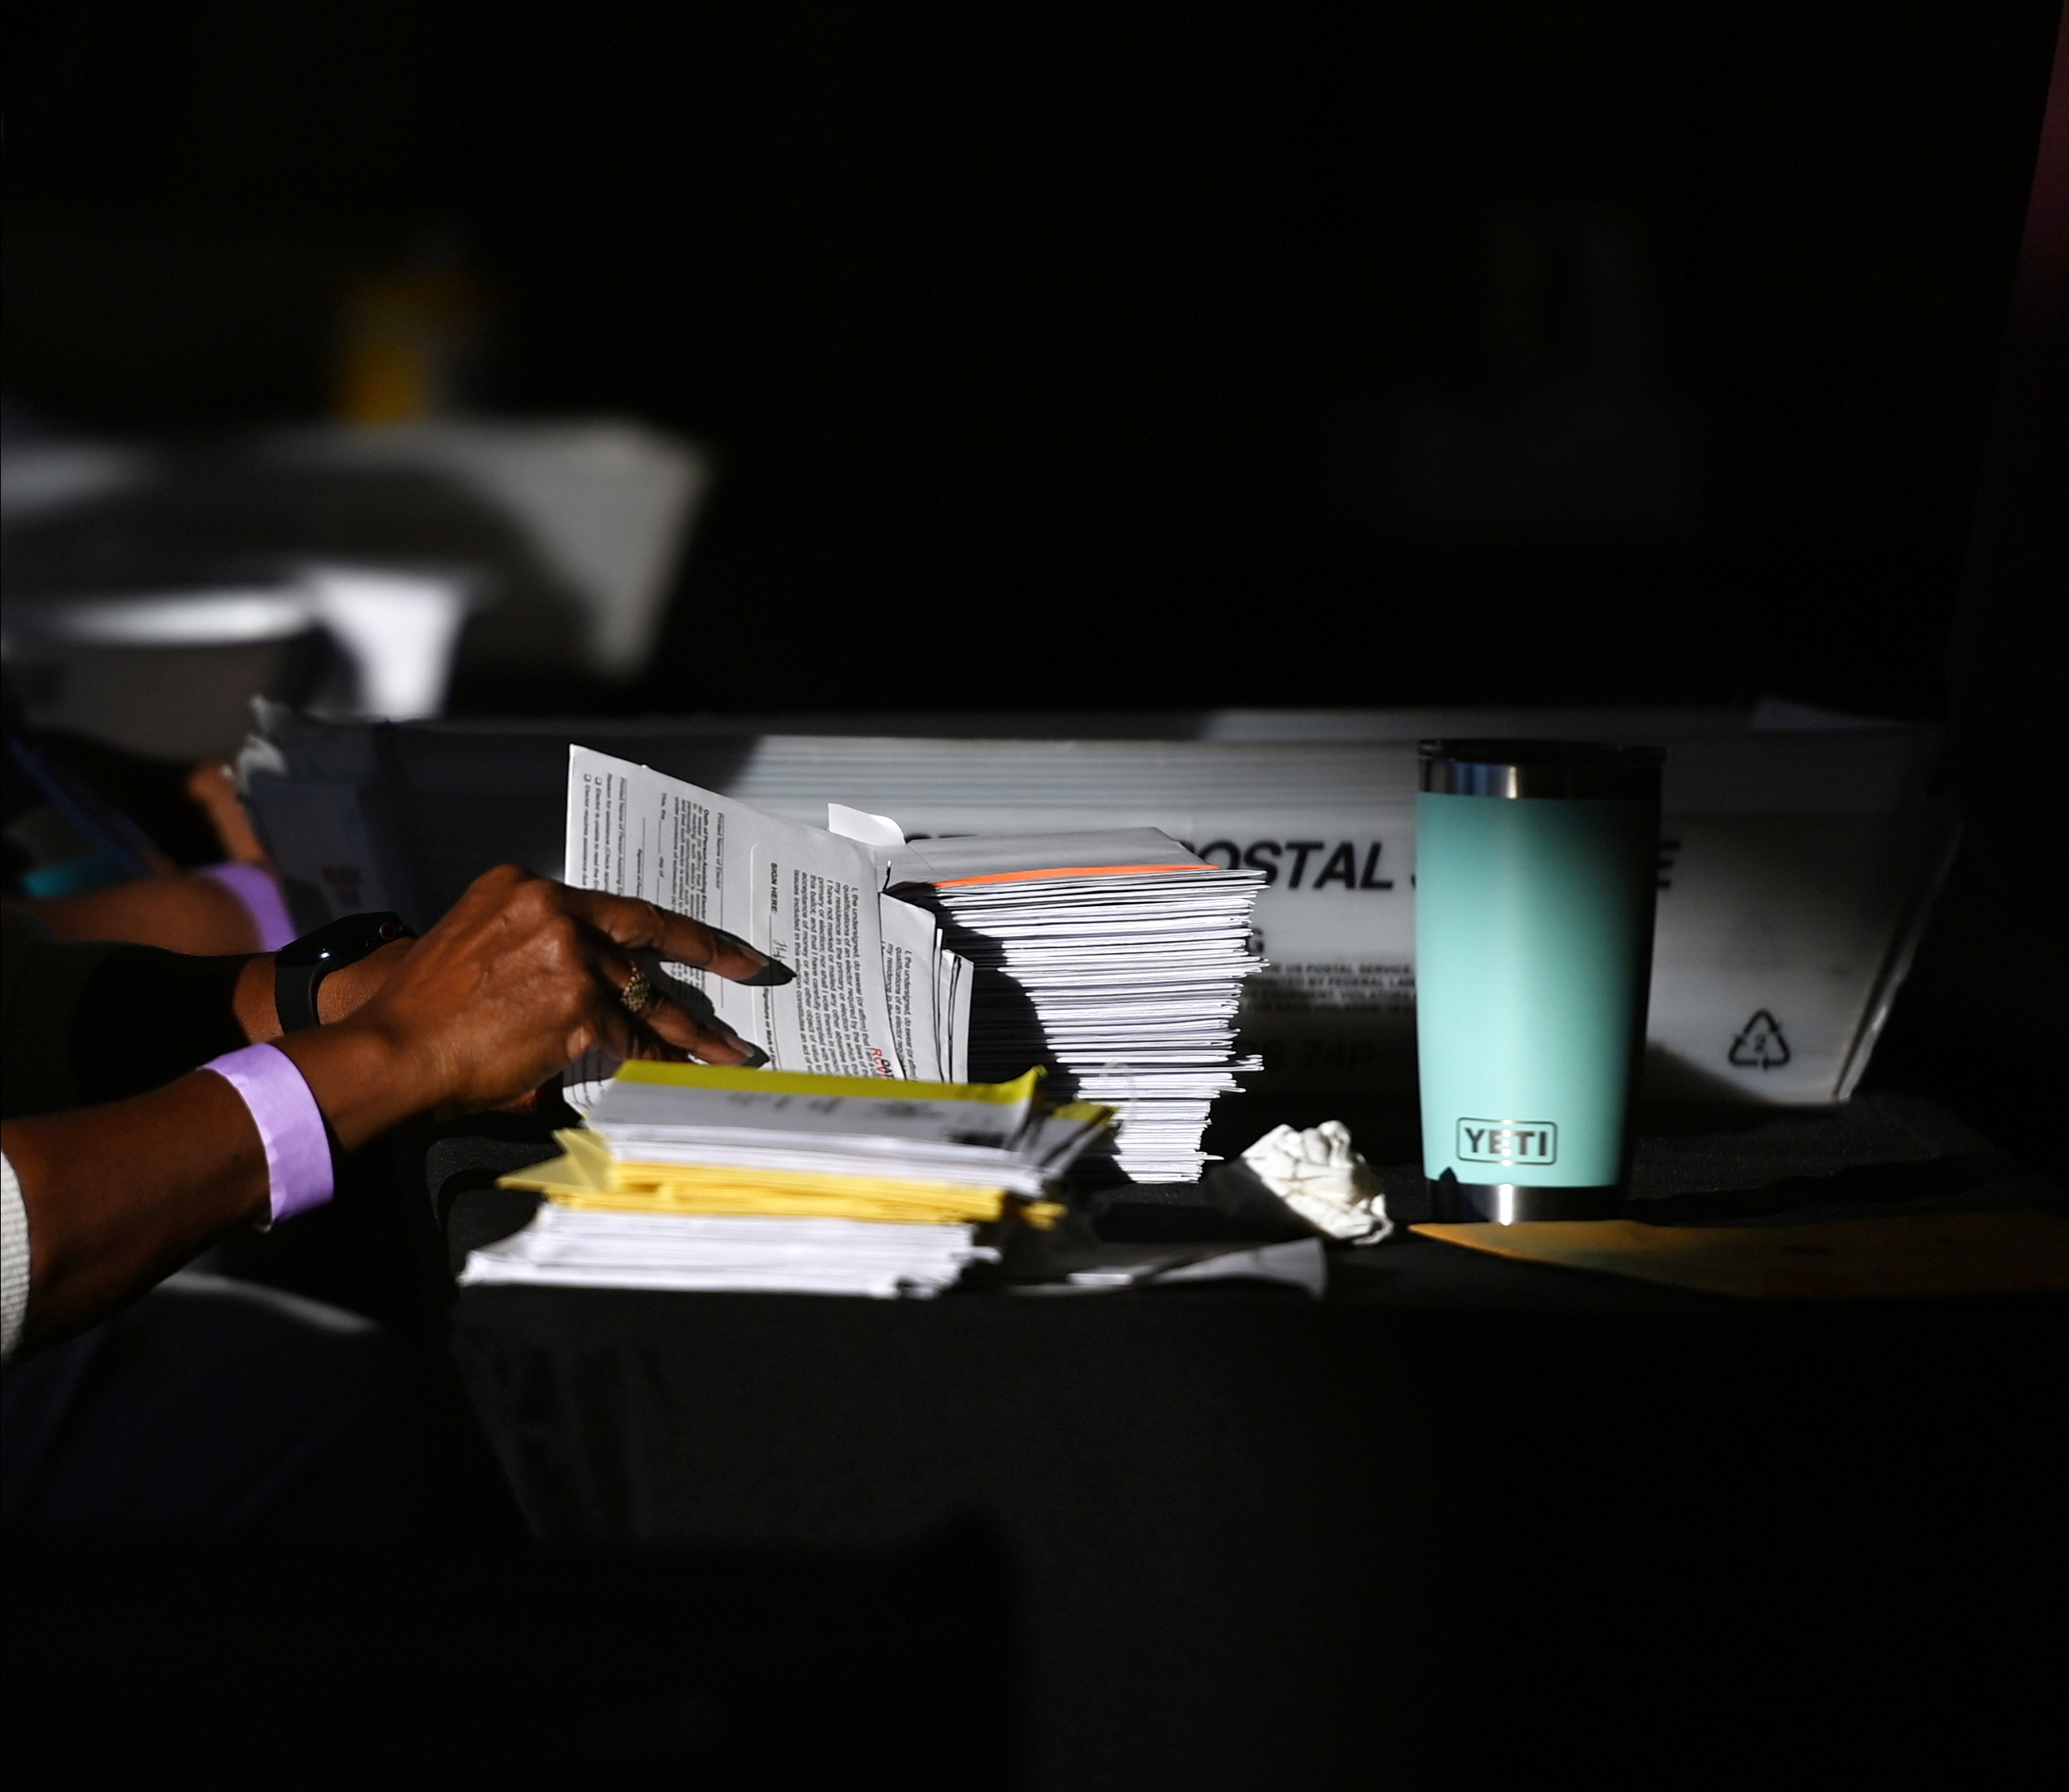 An employee of the Fulton County Board of Registration and Elections processes ballots in Atlanta, Georgia U.S., November 5, 2020. REUTERS/Brandon Bell